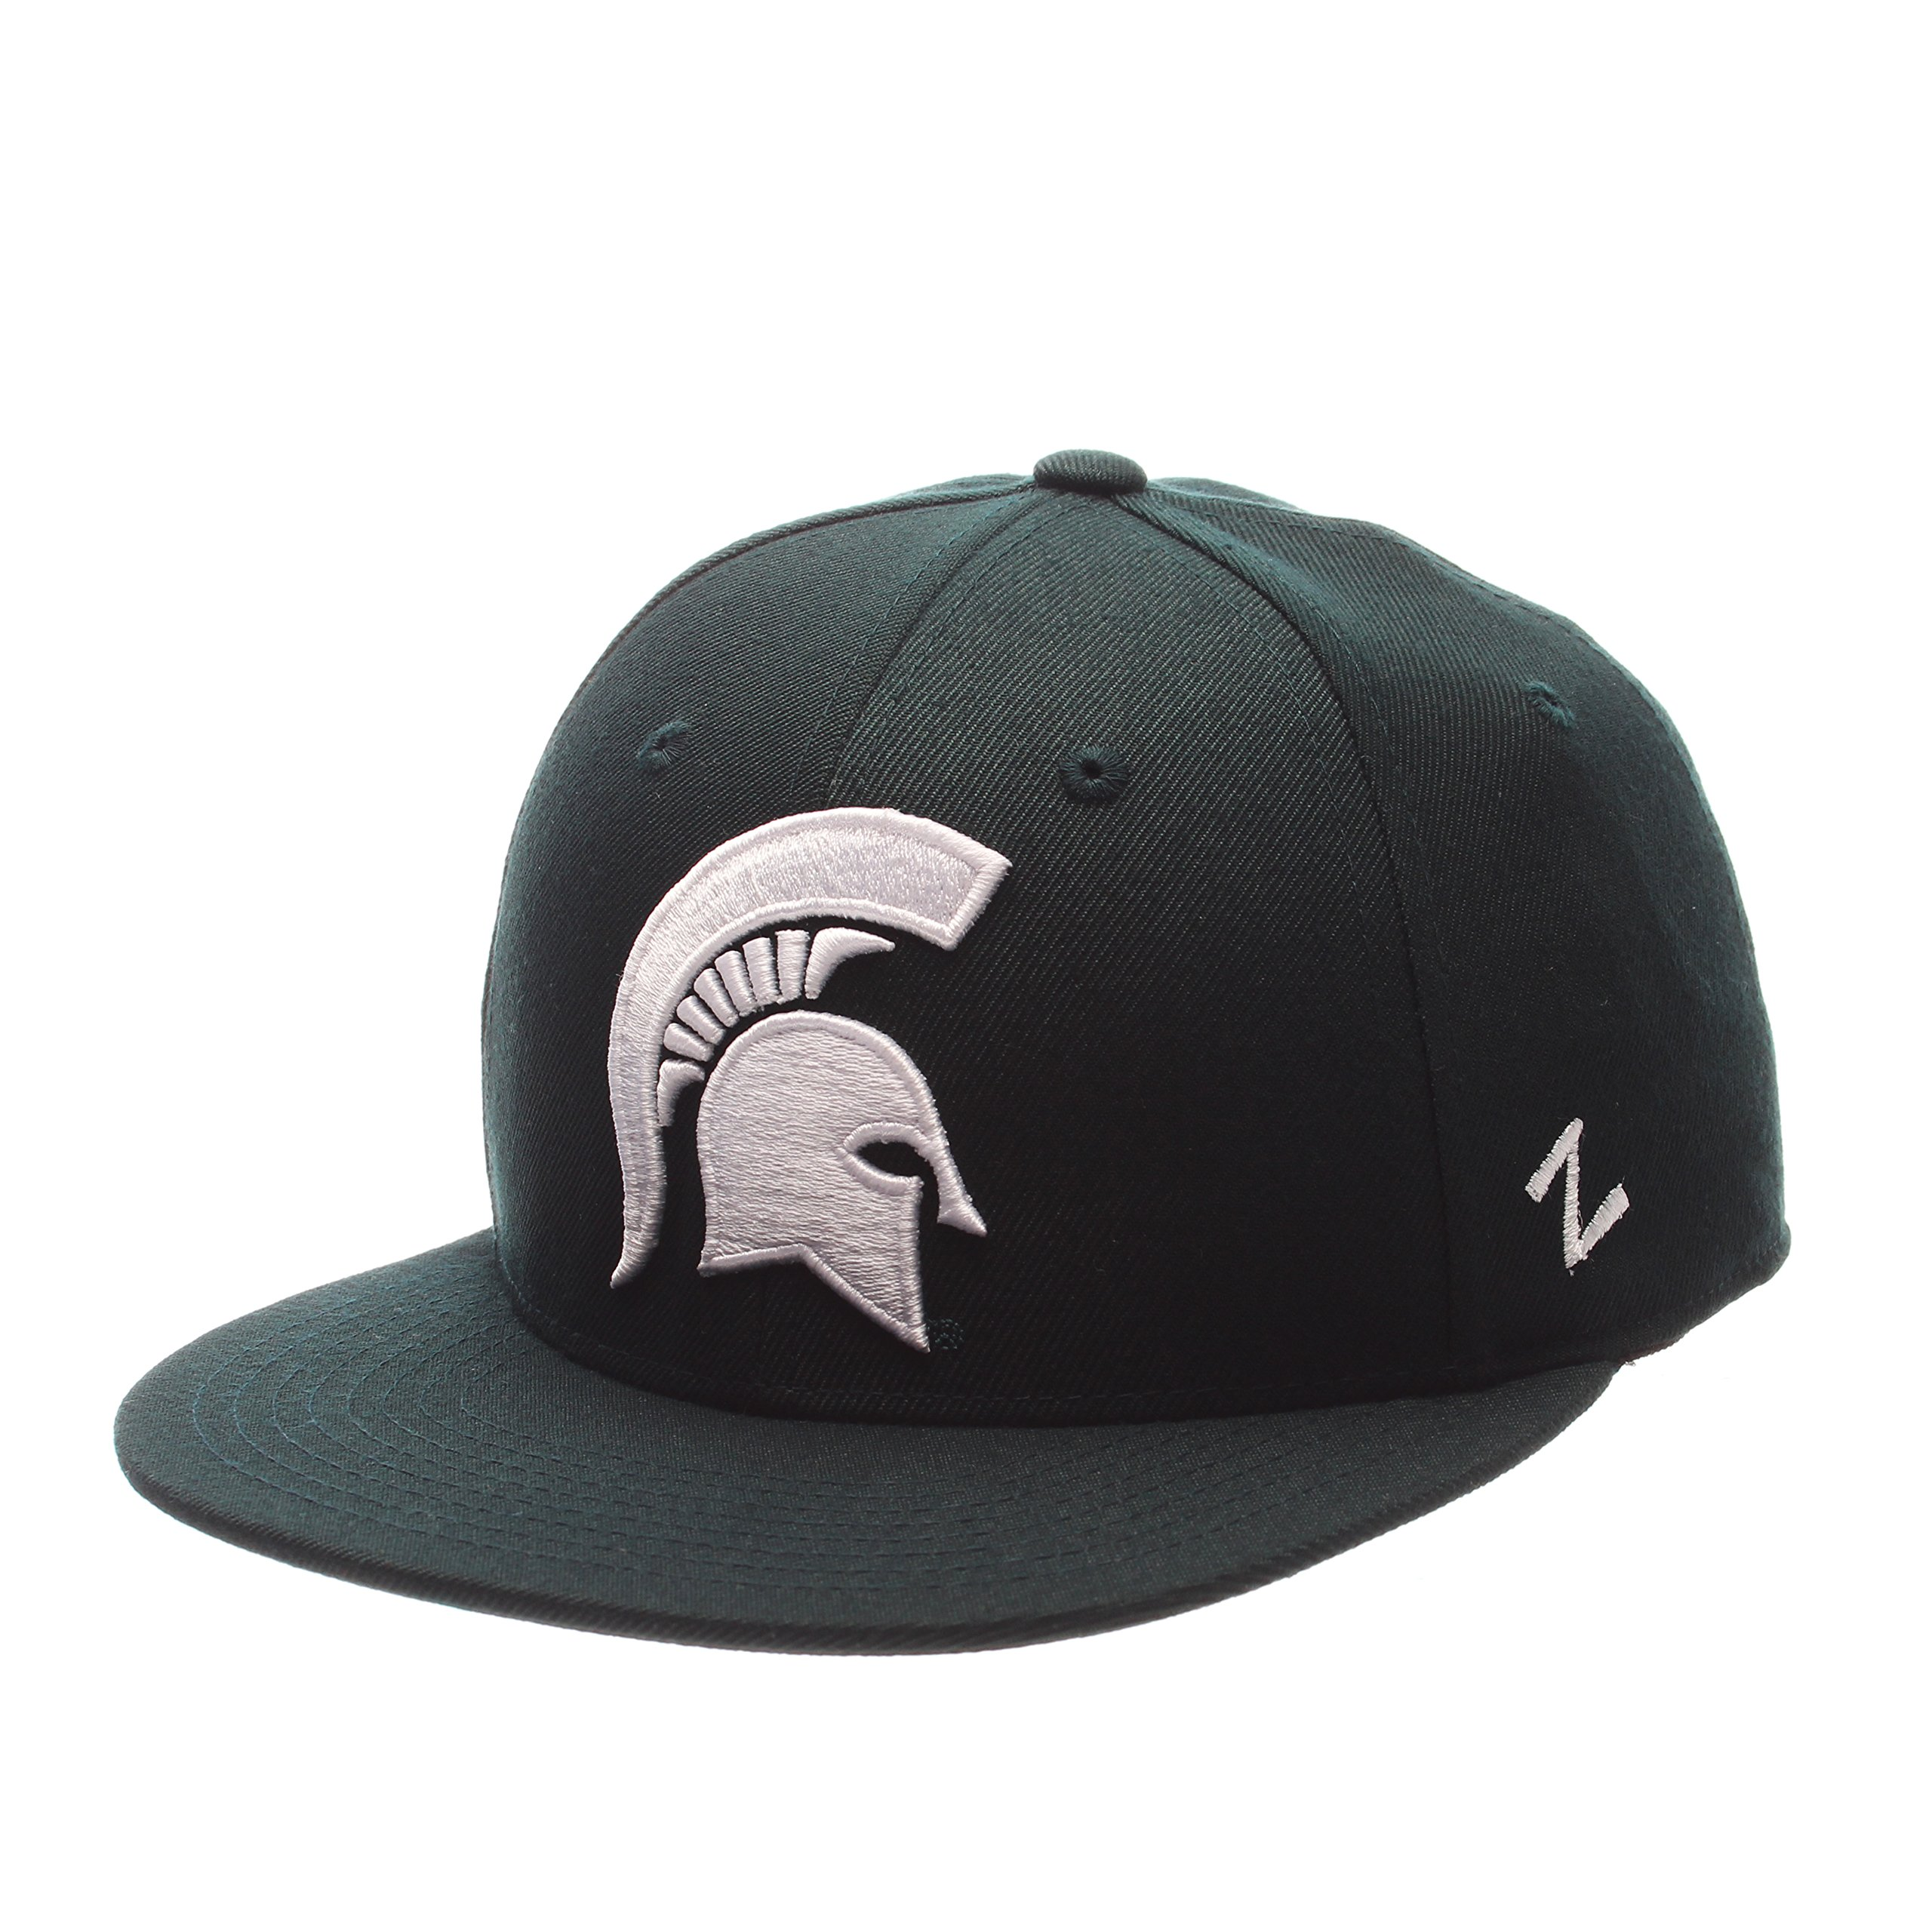 Zephyr NCAA Michigan State Spartans Men's M15 Fitted Hat, Forest, Size 7